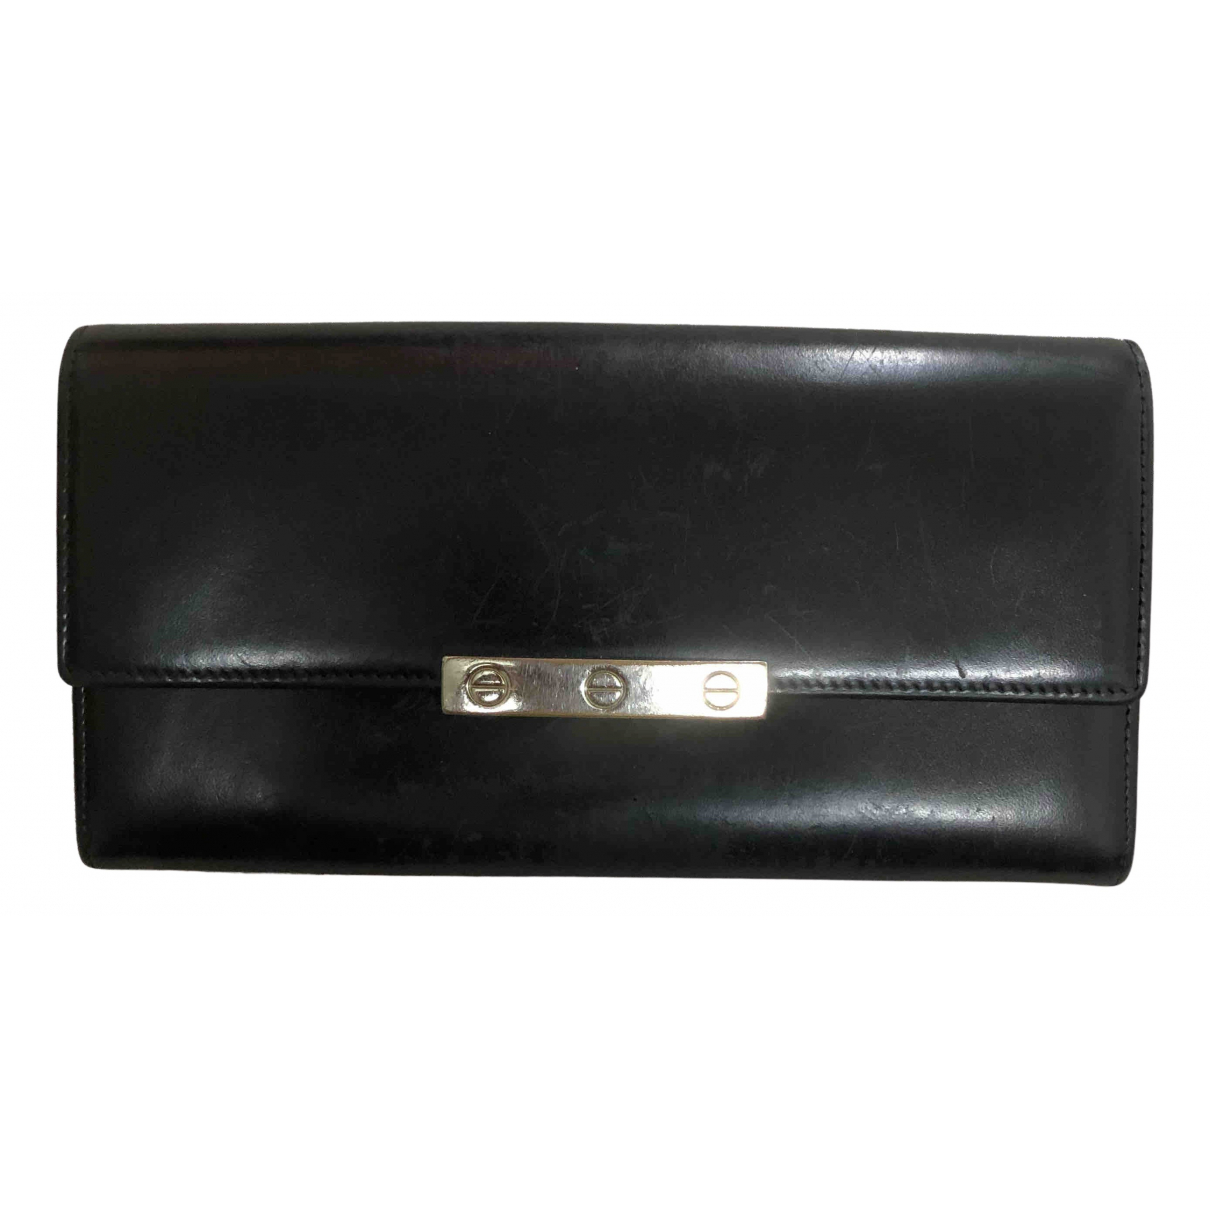 Cartier N Black Leather Purses, wallet & cases for Women N